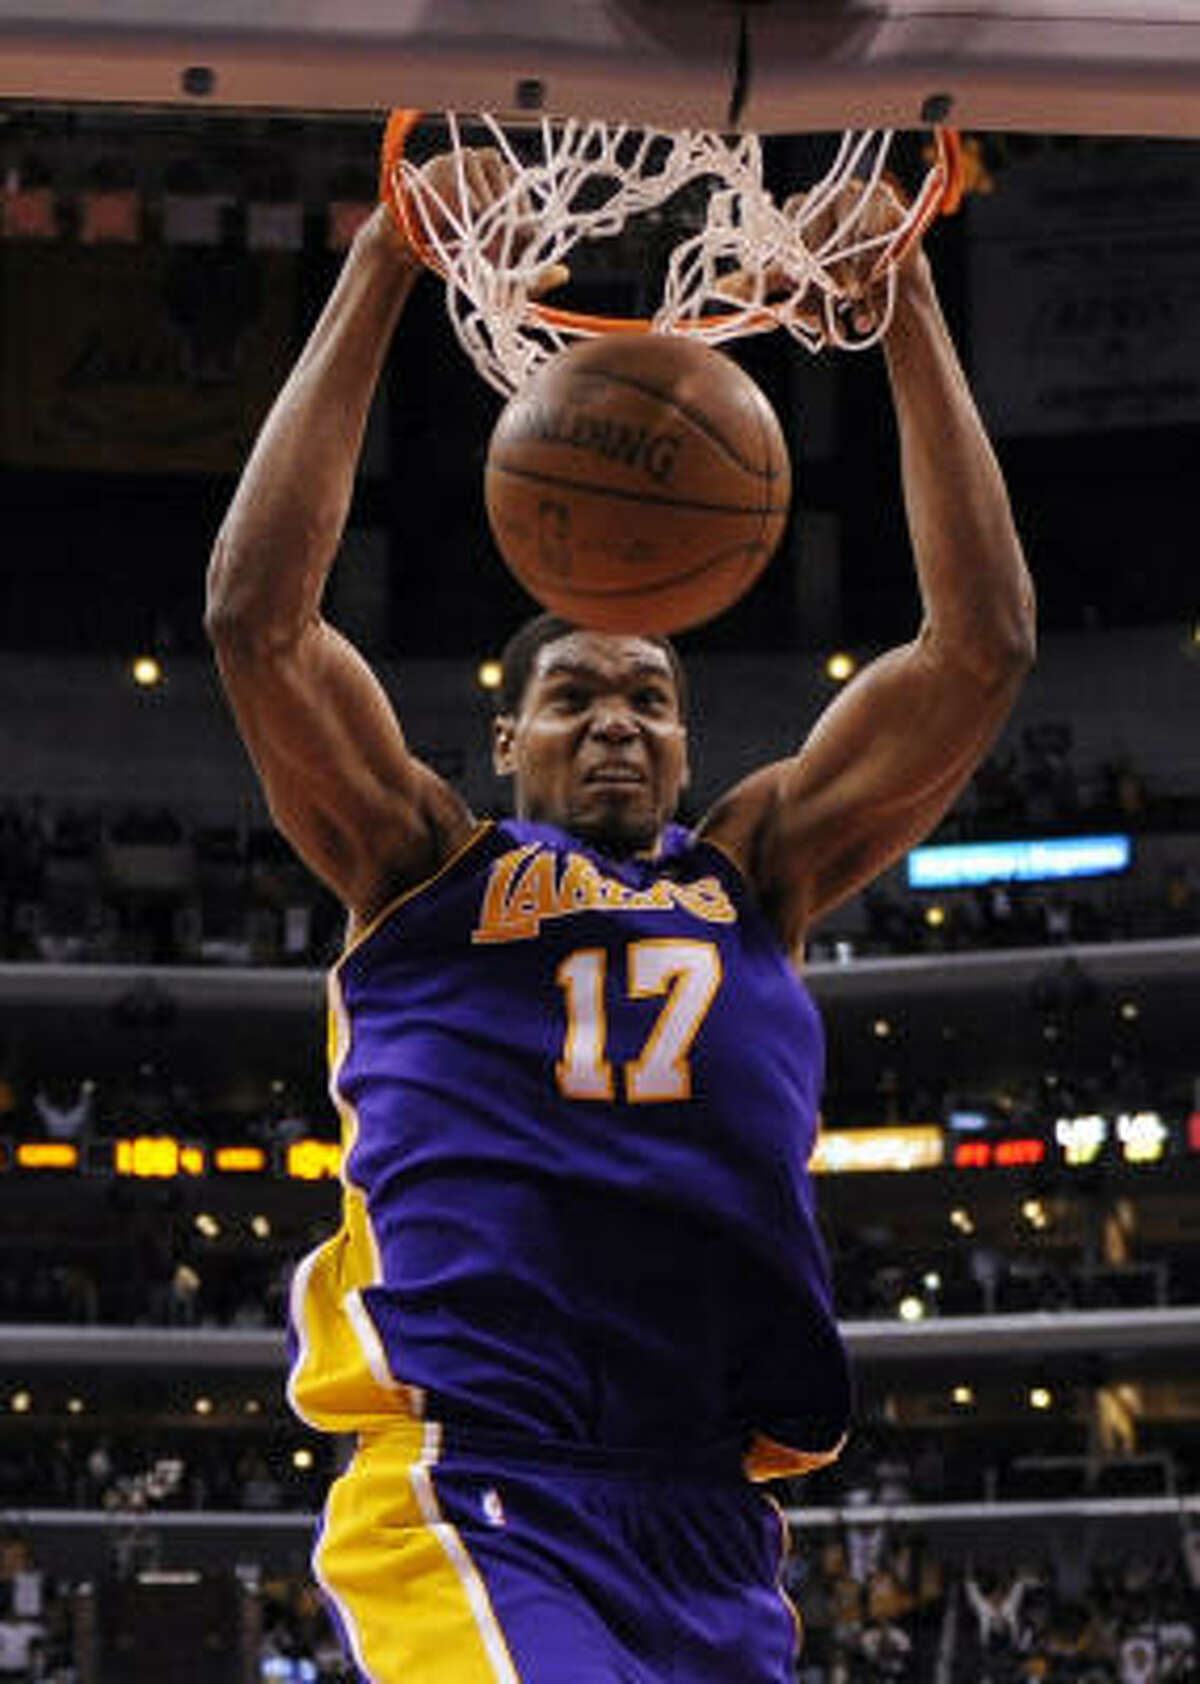 2 - LOS ANGELES LAKERS - (Last wk: 2) - 40-9 - The Lakers definitely made up for that last-second loss on Roger Mason's shot a few weeks ago in San Antonio. They got the Spurs back on the Staples Center floor and served up a replay of last year's playoffs. Jordan Farmar is back in the lineup and Andrew Bynum (pictured) is taking strides. Every weapon will be needed as LA has more road games (24) left to play than any team in the league.